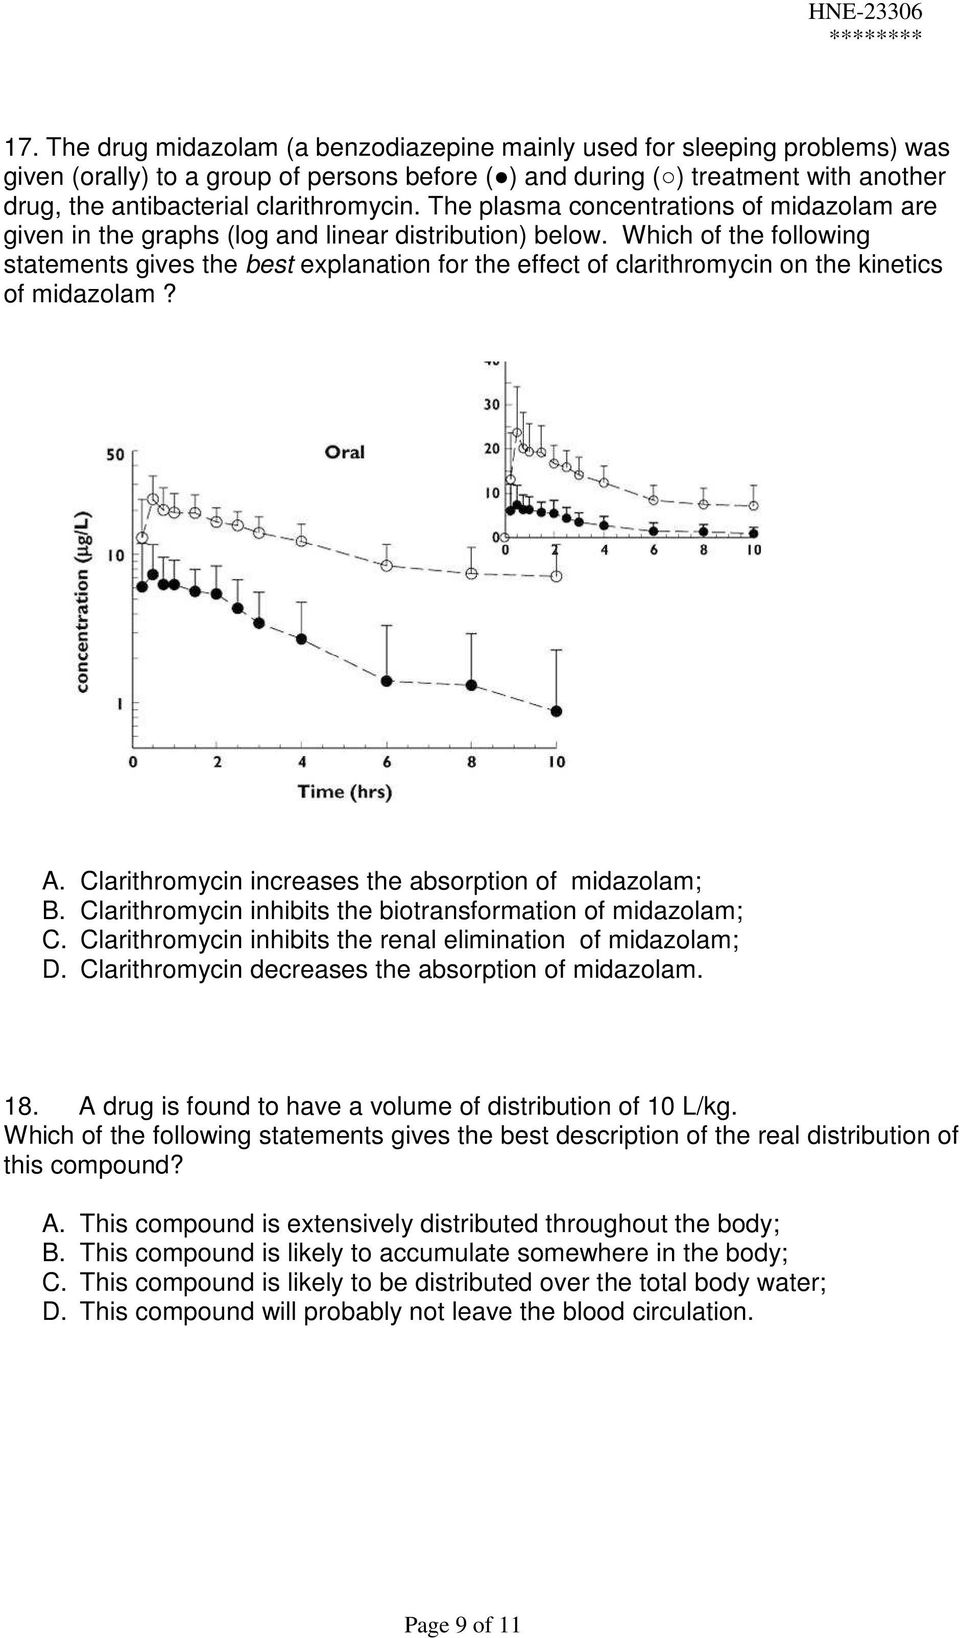 Which of the following statements gives the best explanation for the effect of clarithromycin on the kinetics of midazolam? A. Clarithromycin increases the absorption of midazolam; B.